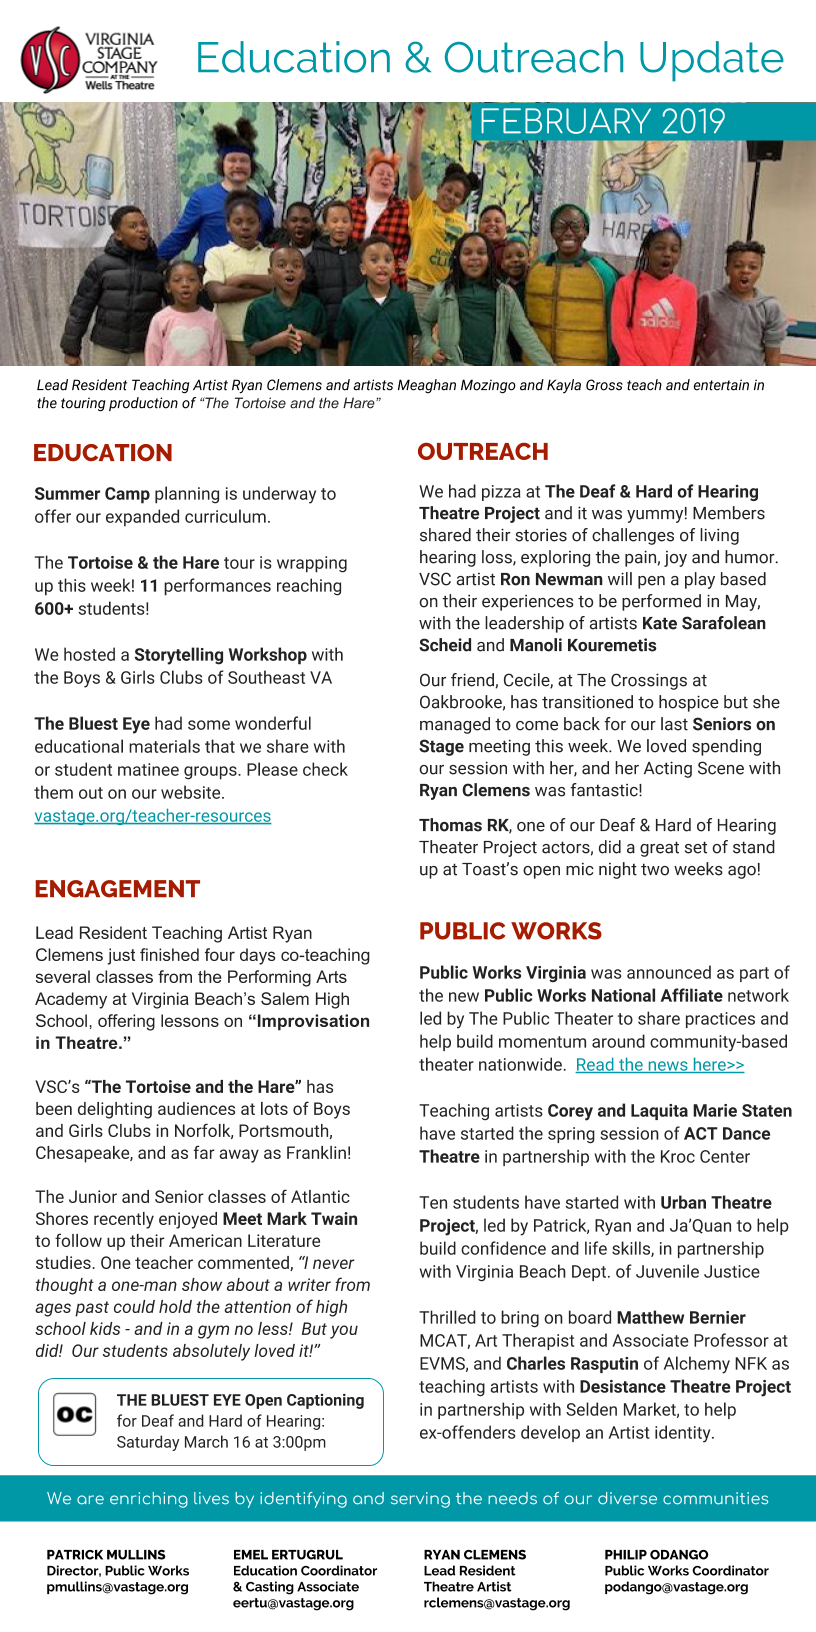 Education and Outreach Update - Feb 2019.png